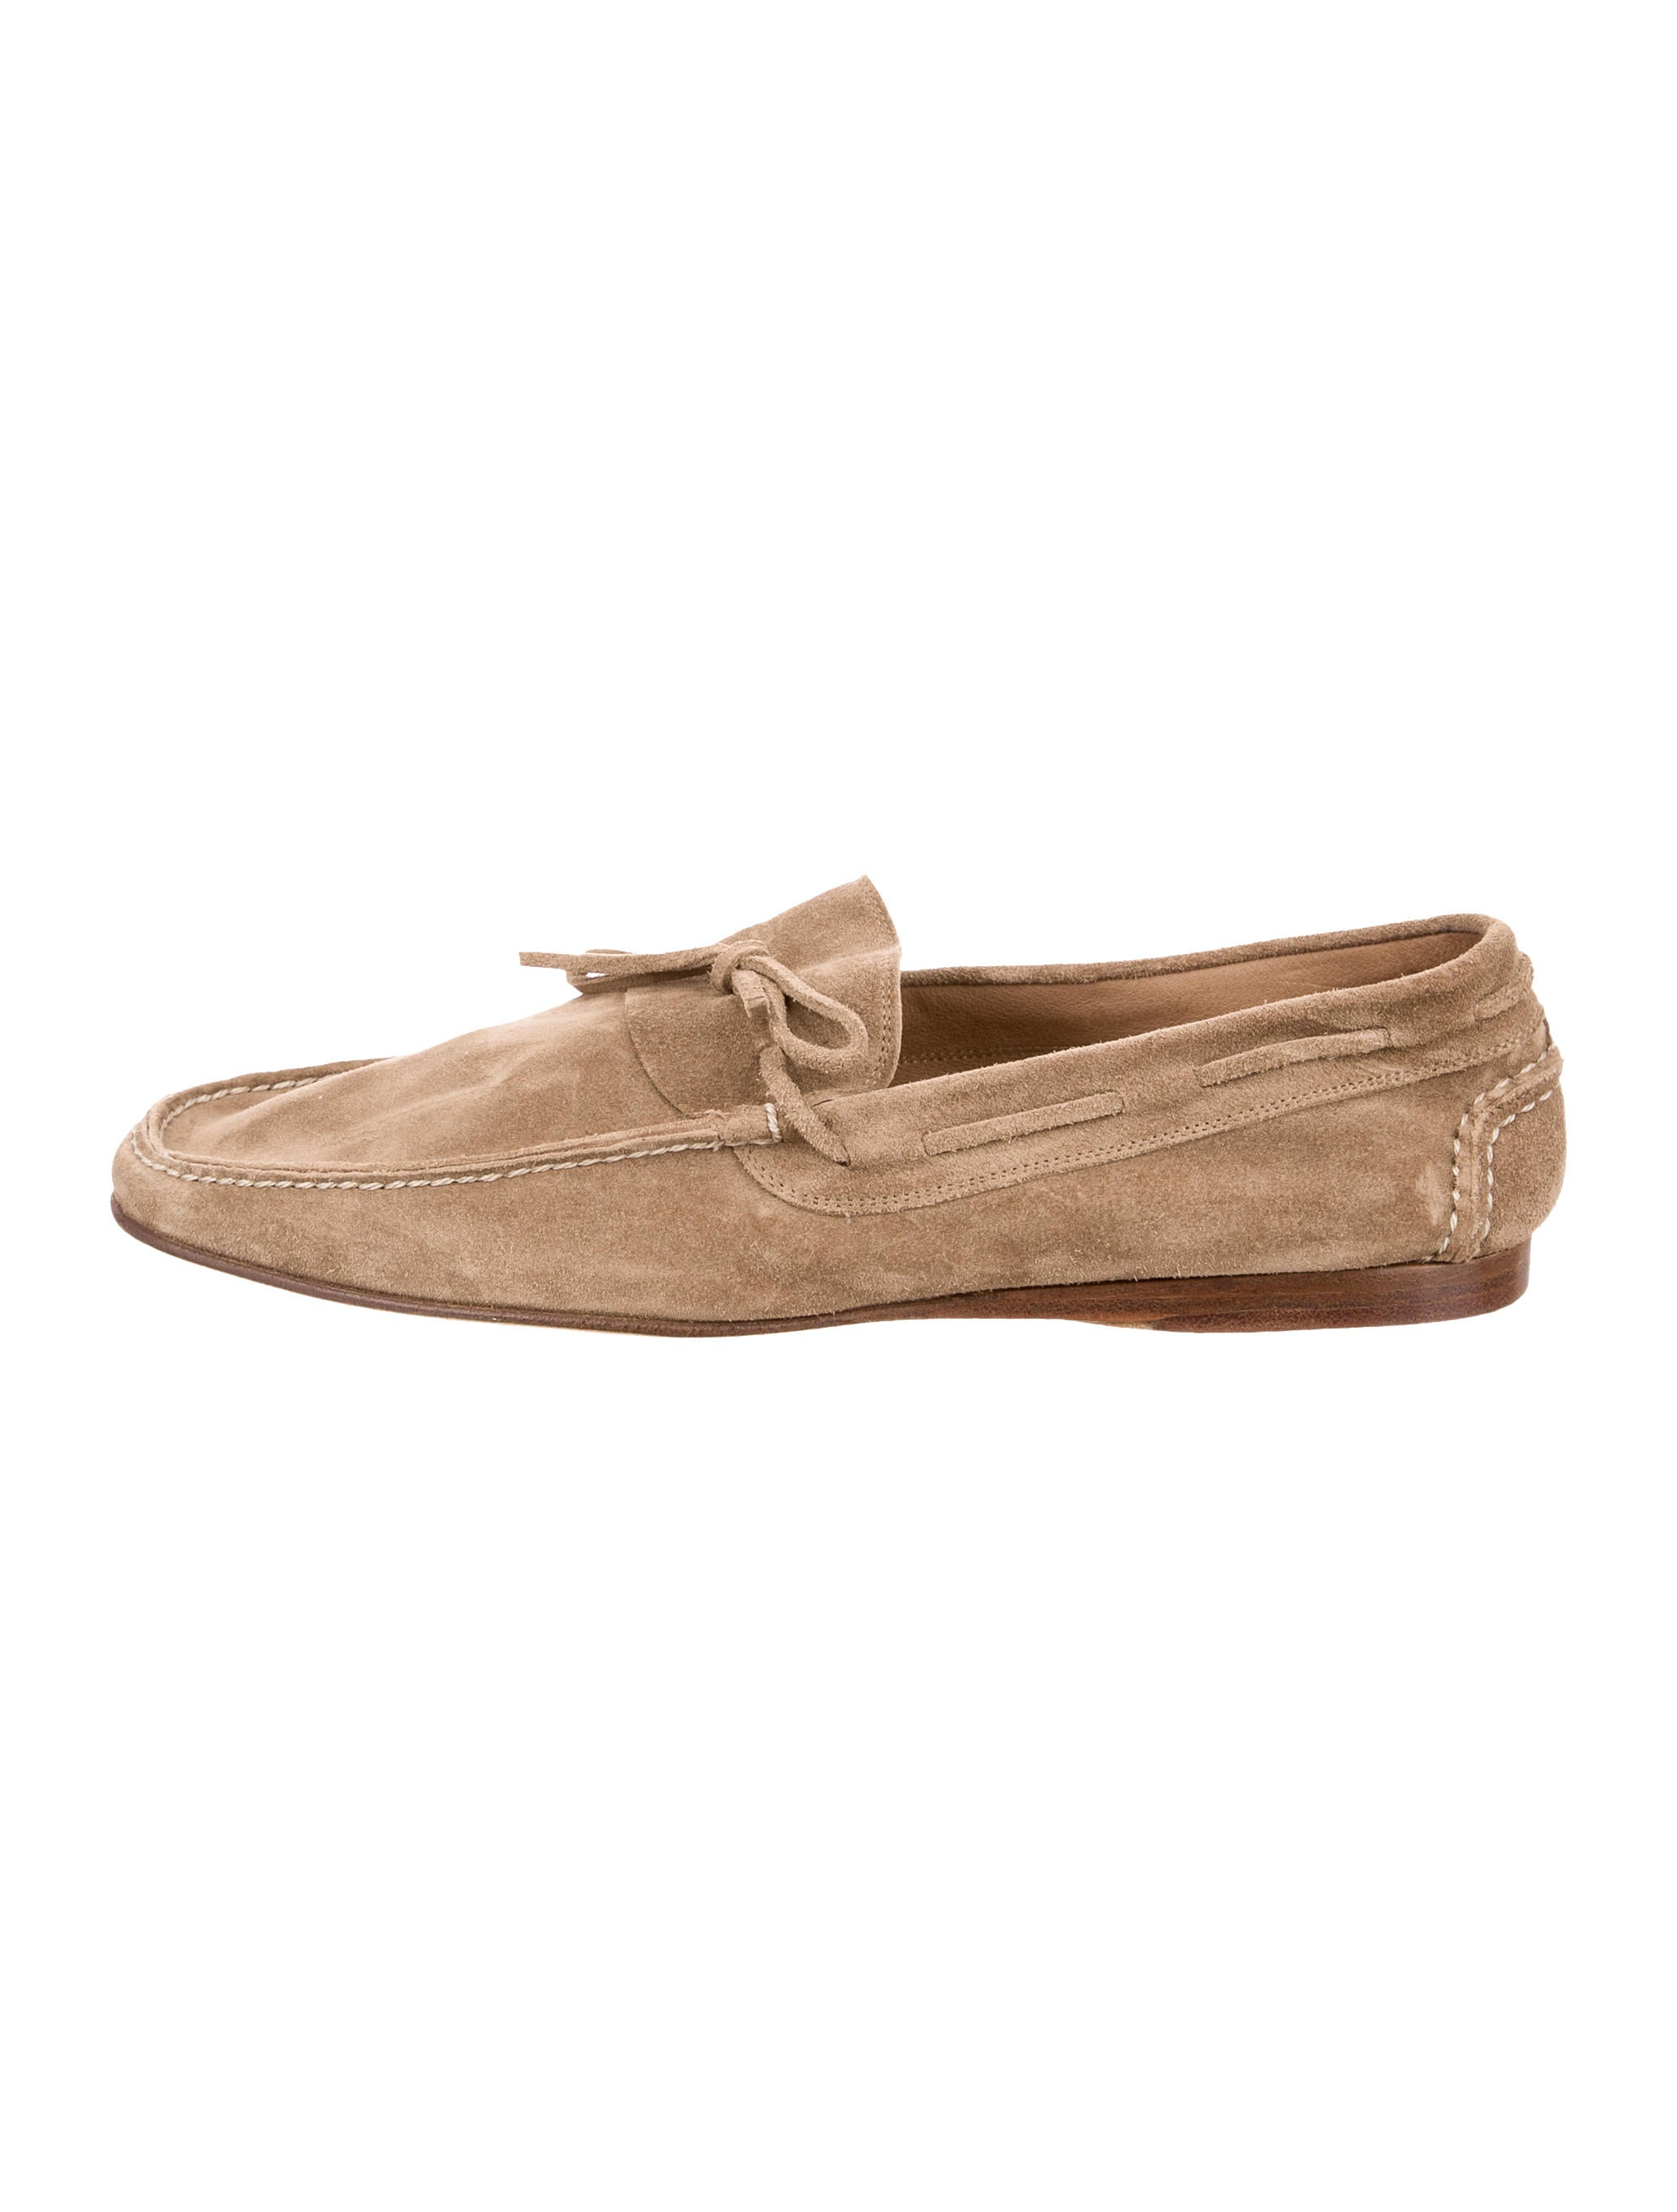 Hermu00e8s Suede Tie-Accented Loafers - Shoes - HER94031 | The ...